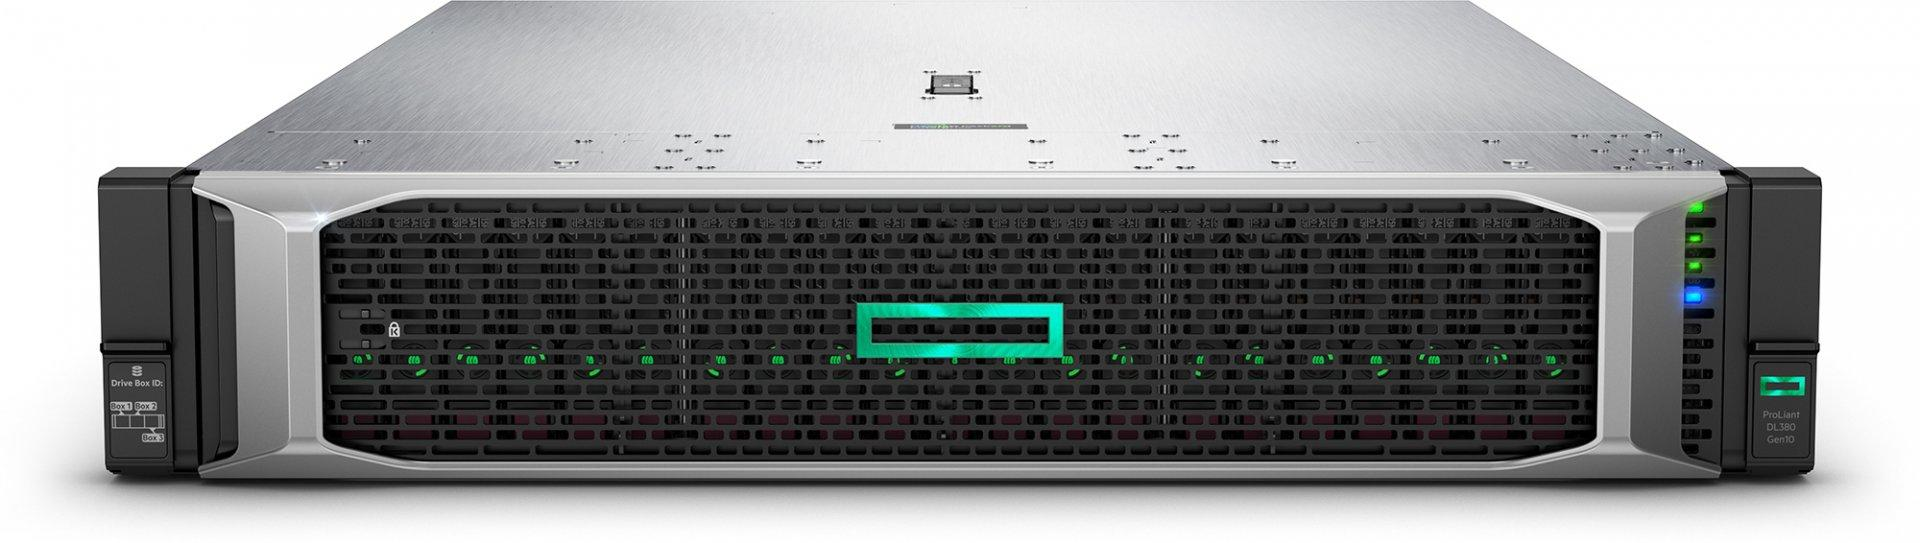 Сервер HPE ProLiant DL380 Gen10 (2U)